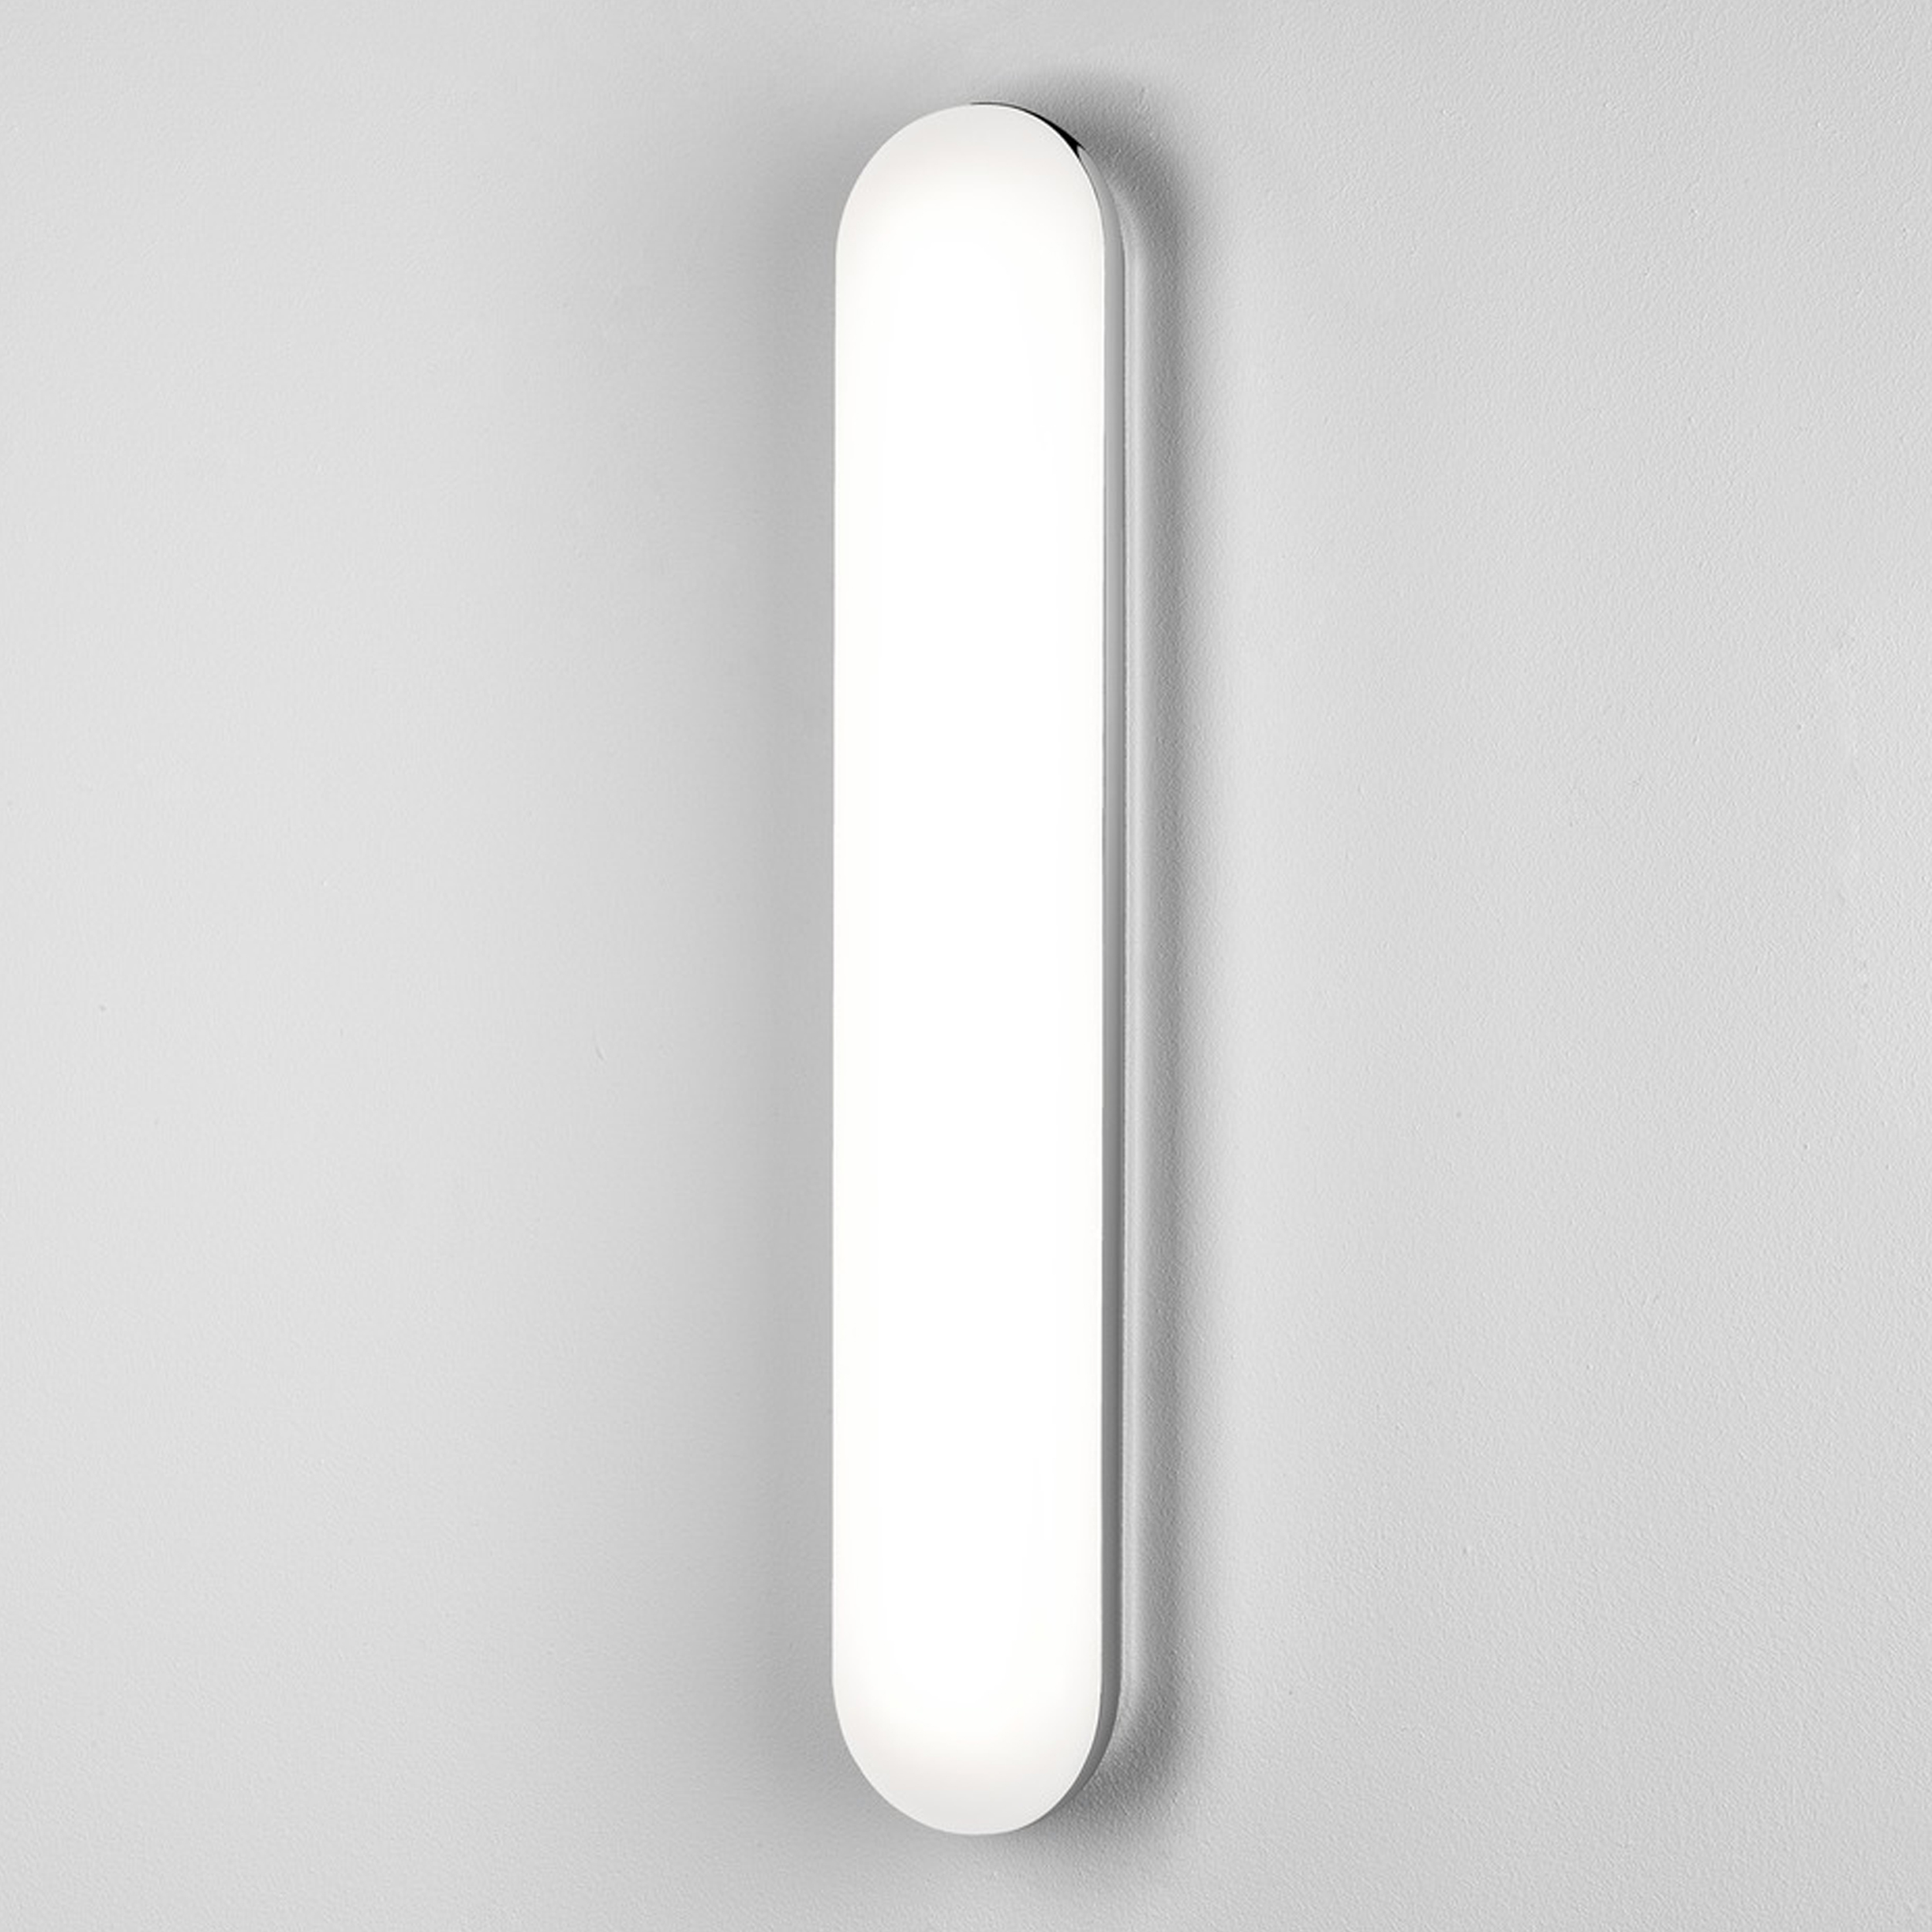 Astro Altea 500 Led Wall Light Chrome